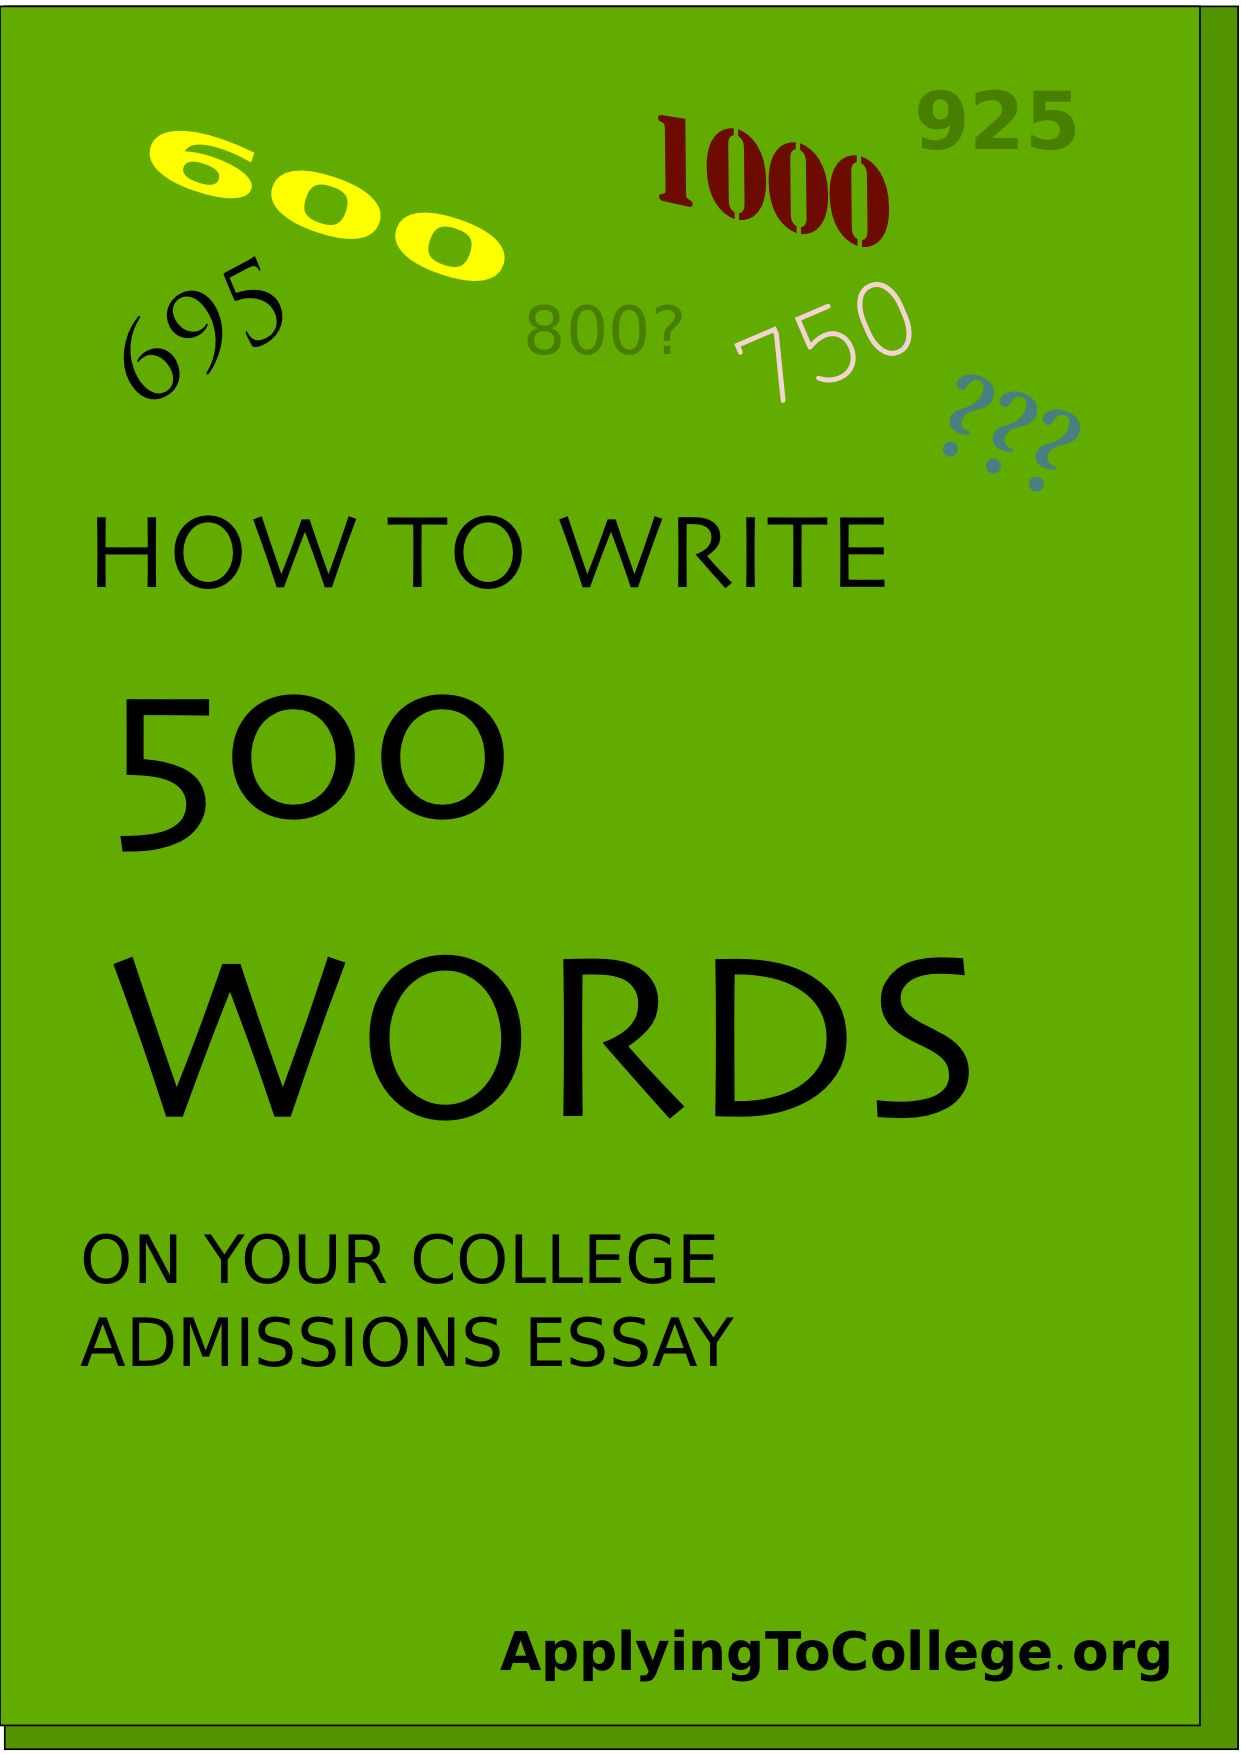 005 Essay Example College Word Impressive Limit Count Admission 2019 Full